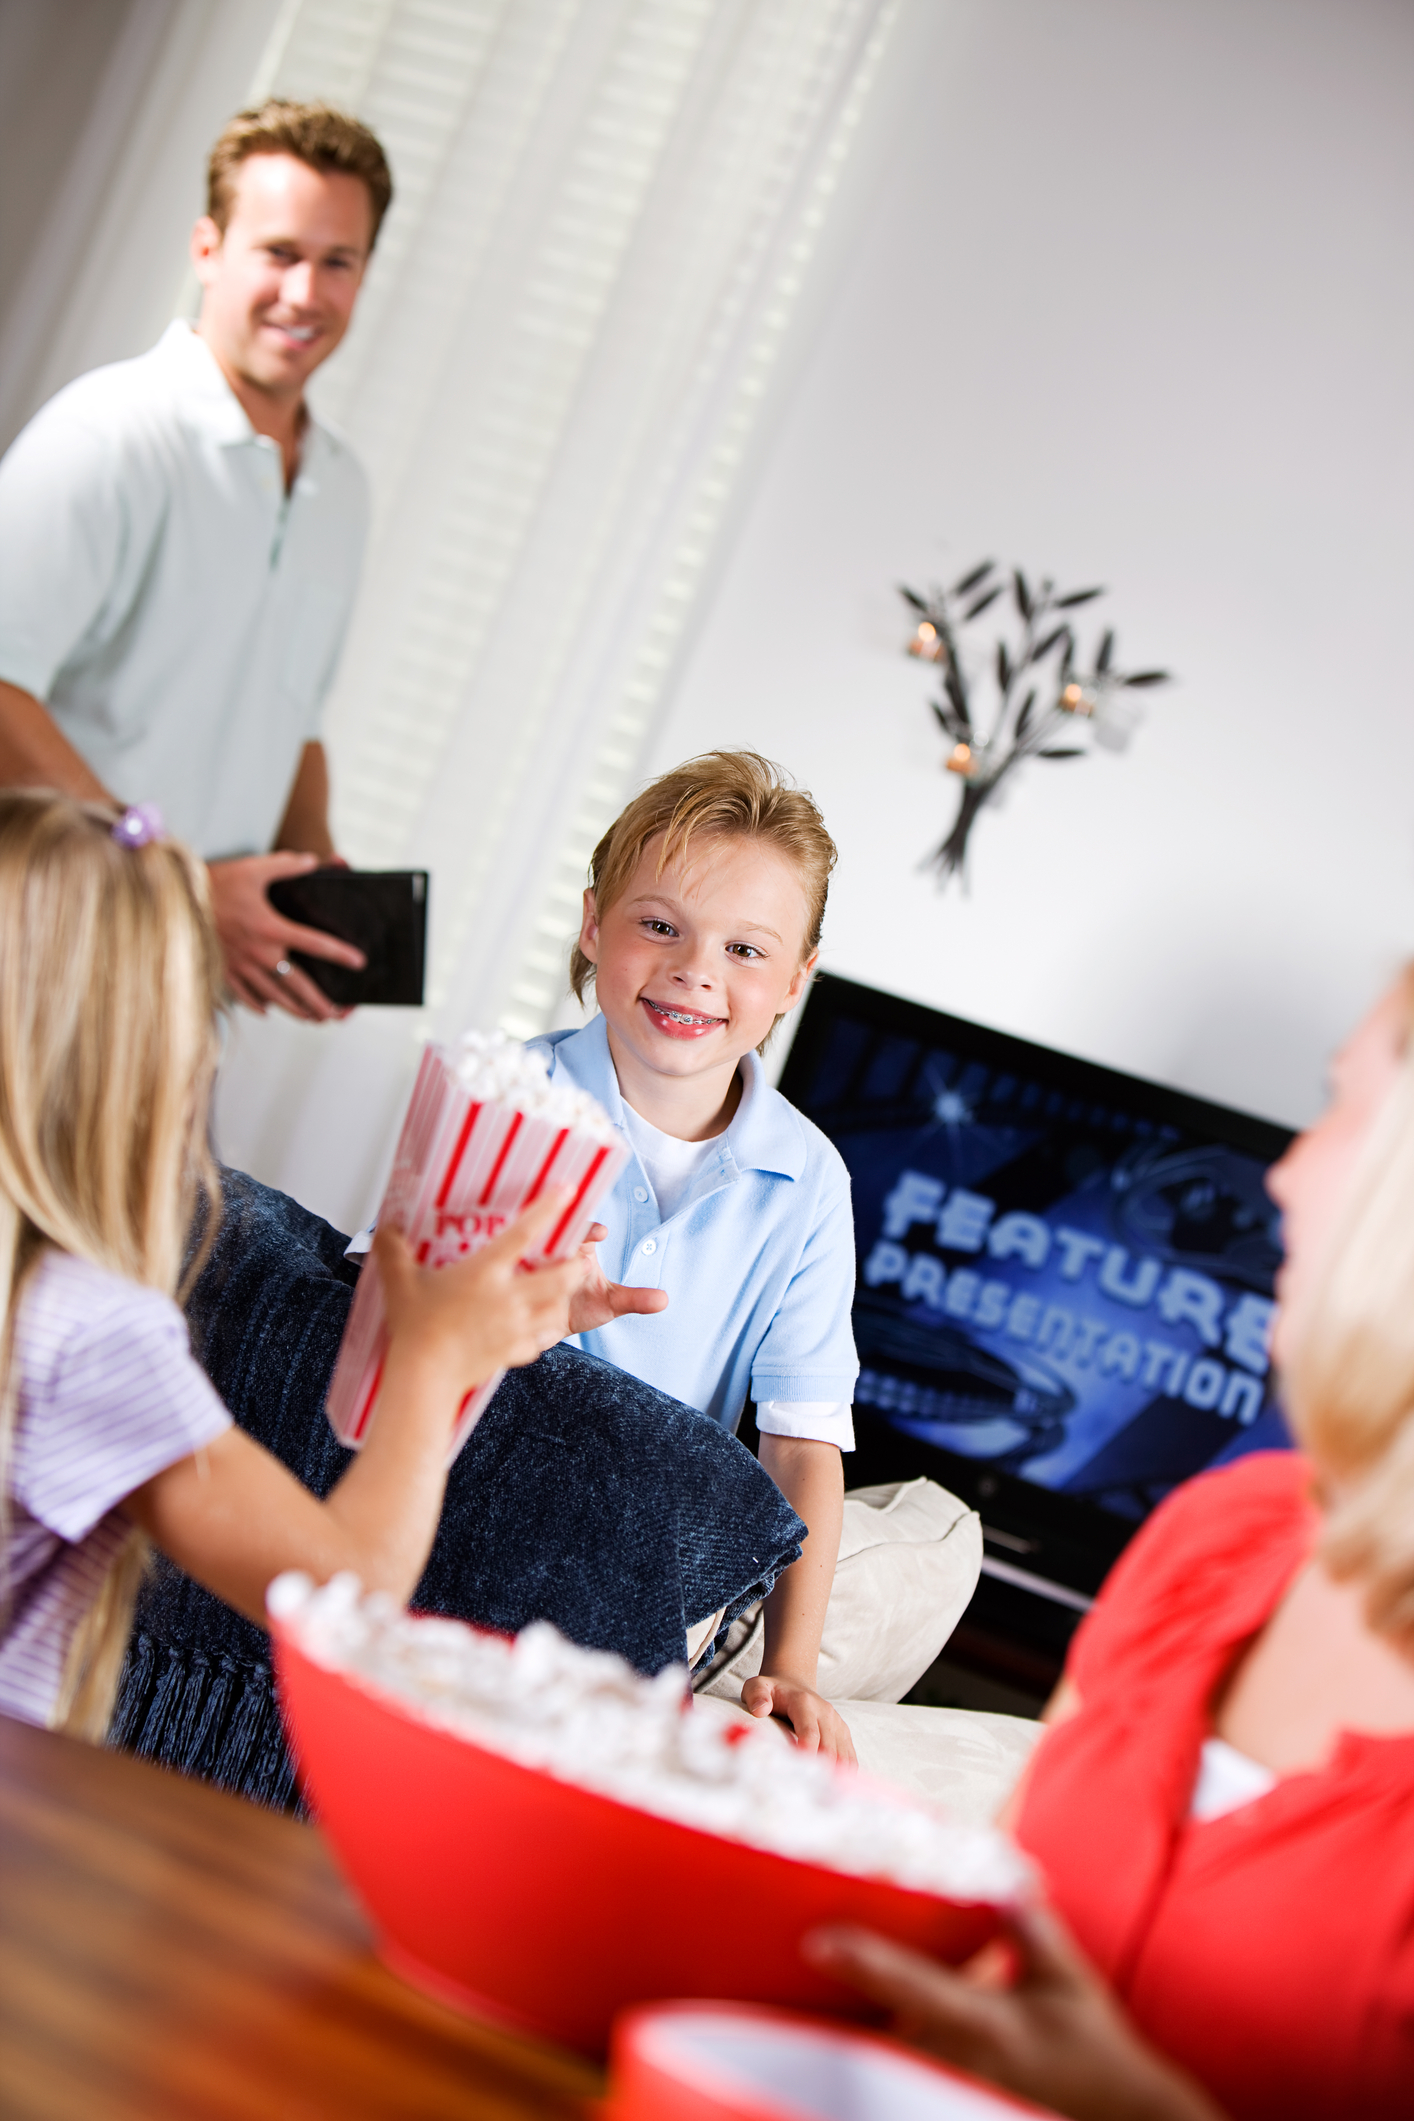 Just because you can't enjoy a night out at the theater, doesn't mean you can't have a family movie night! I gathered up a list of some current must-watch family shows, a list of the best family movies of all time, and a bucket list of family movies and activities to keep things interesting. Check it out!